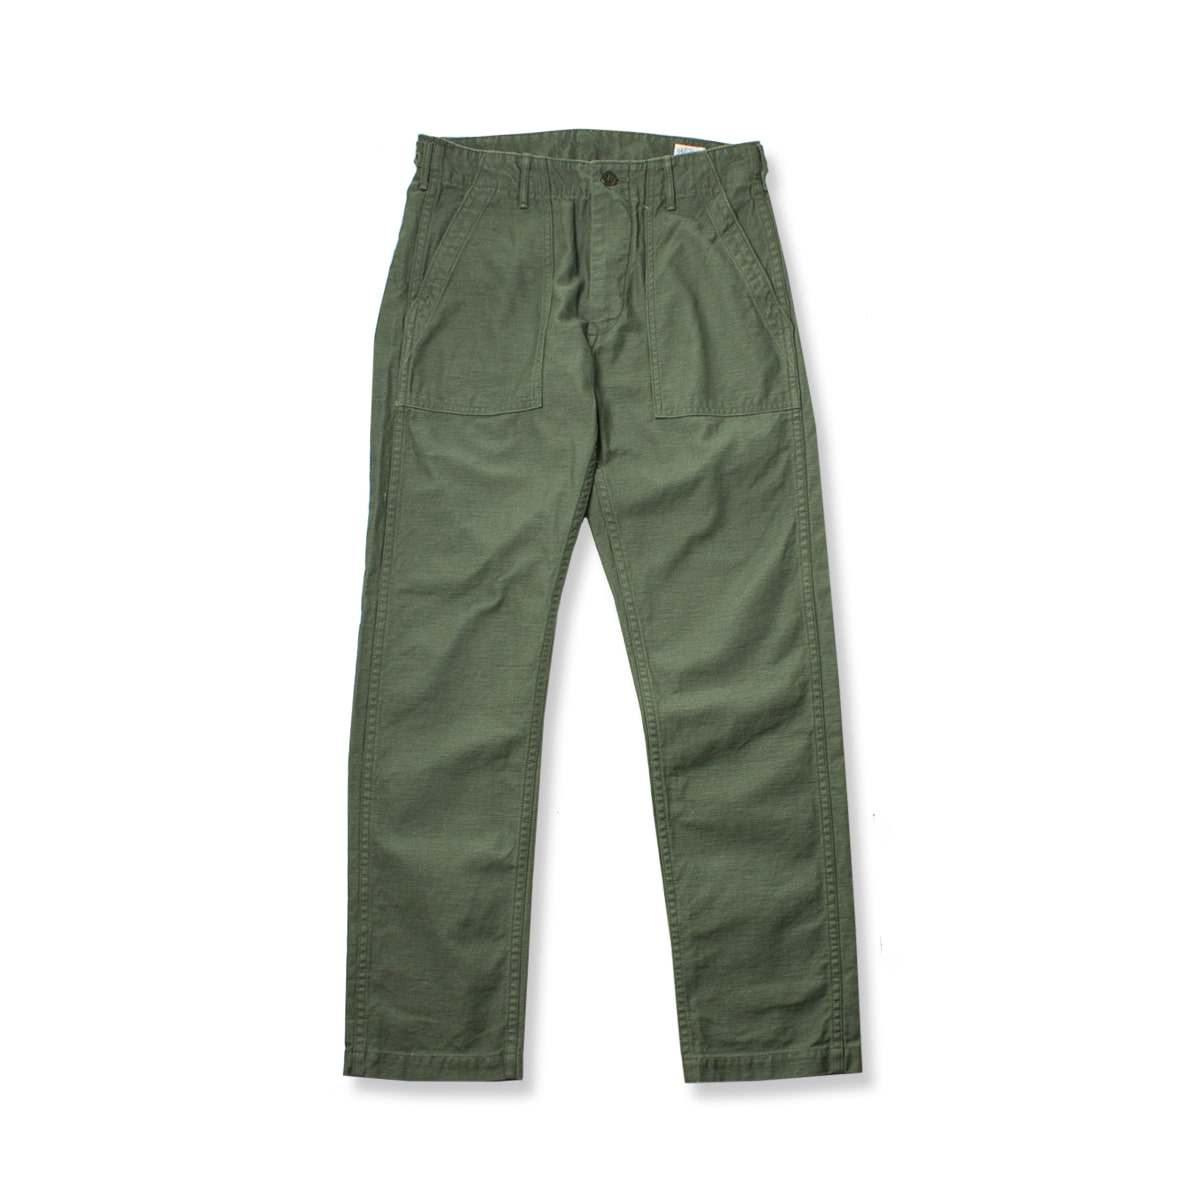 [ORSLOW] US ARMY FATIGUE PANTS SLIM FIT 'OLIVE'